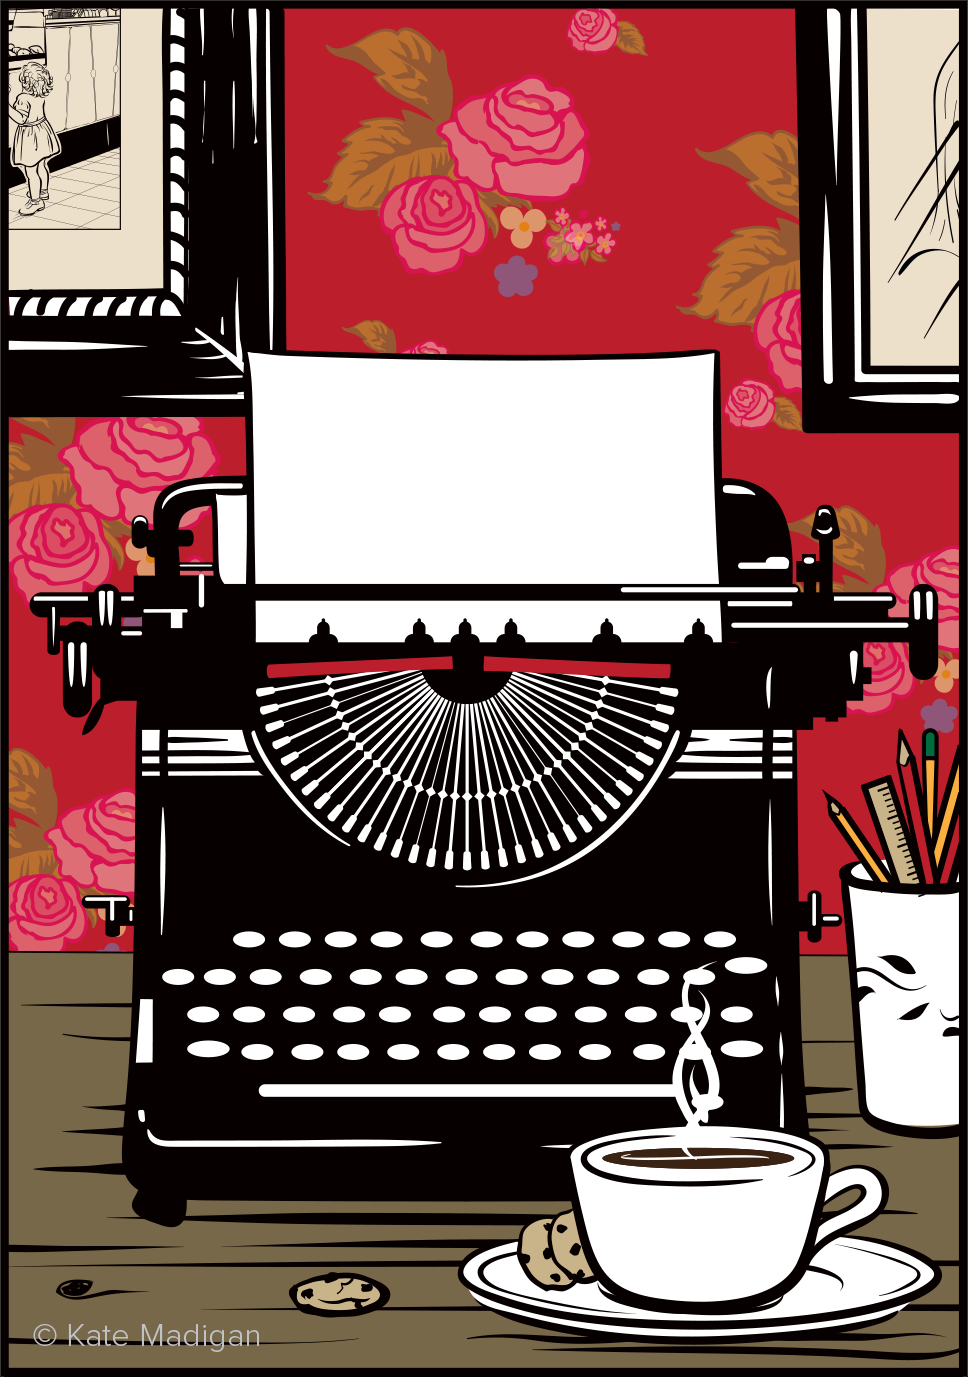 Drawing of an old-fashioned typewriter against a crimson floral wallpaper, with pens and pencils in a jar and a cup of tea and biscuits in the foreground. Copyright Kate Madigan.